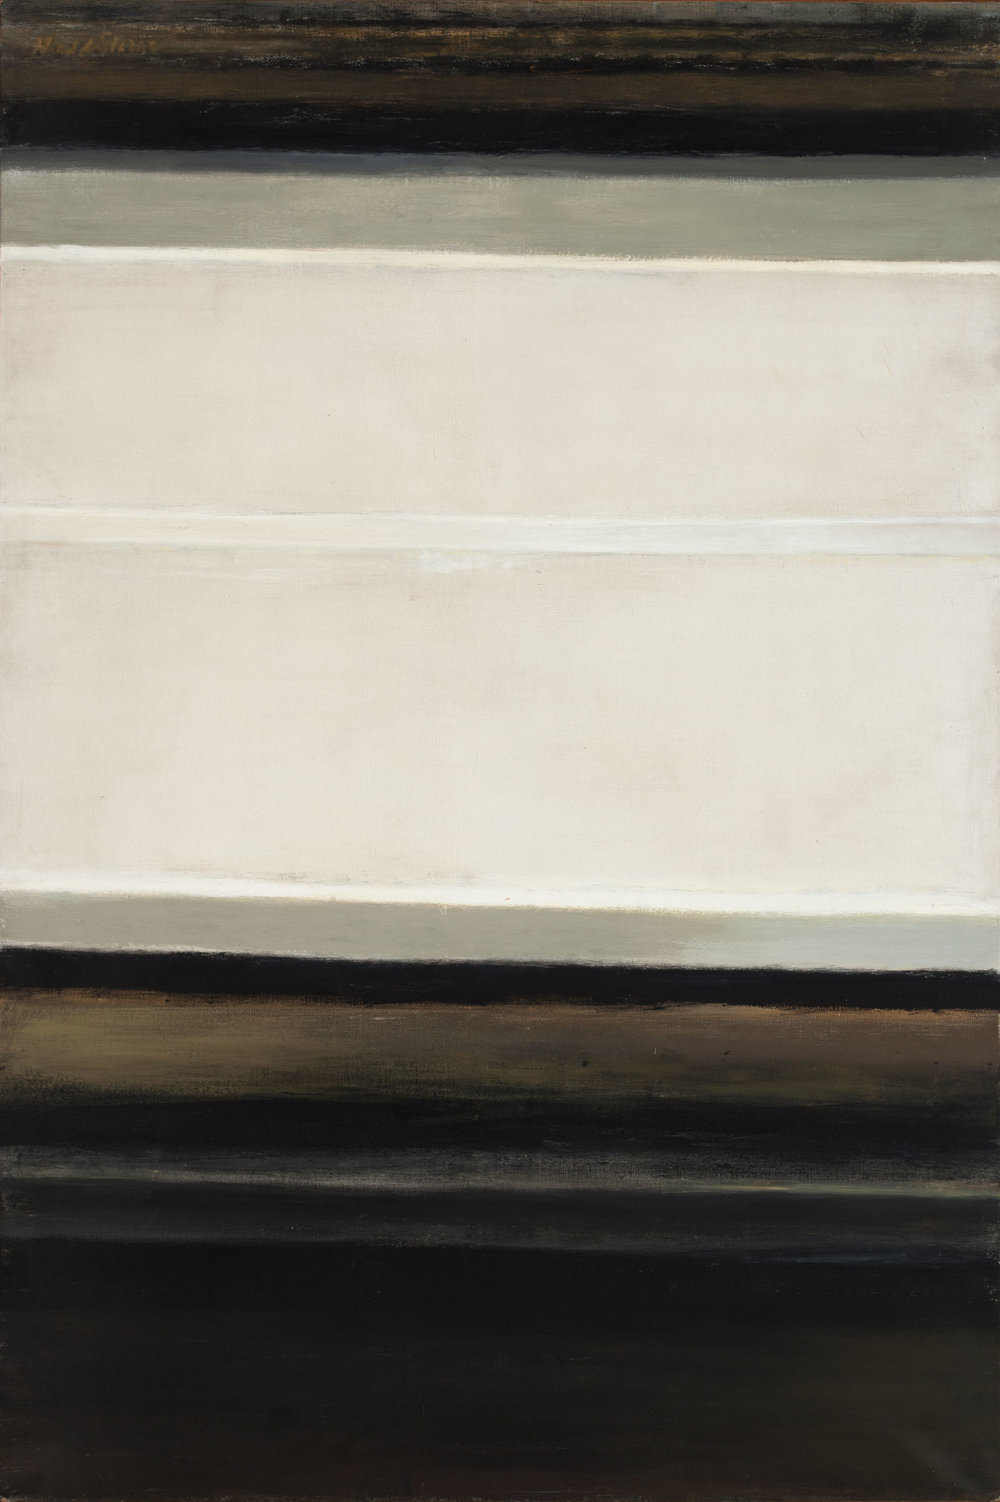 Hedda Sterne, Vertical-Horizontal #1, 1962, Oil on canvas, 60 in. x 40 in.